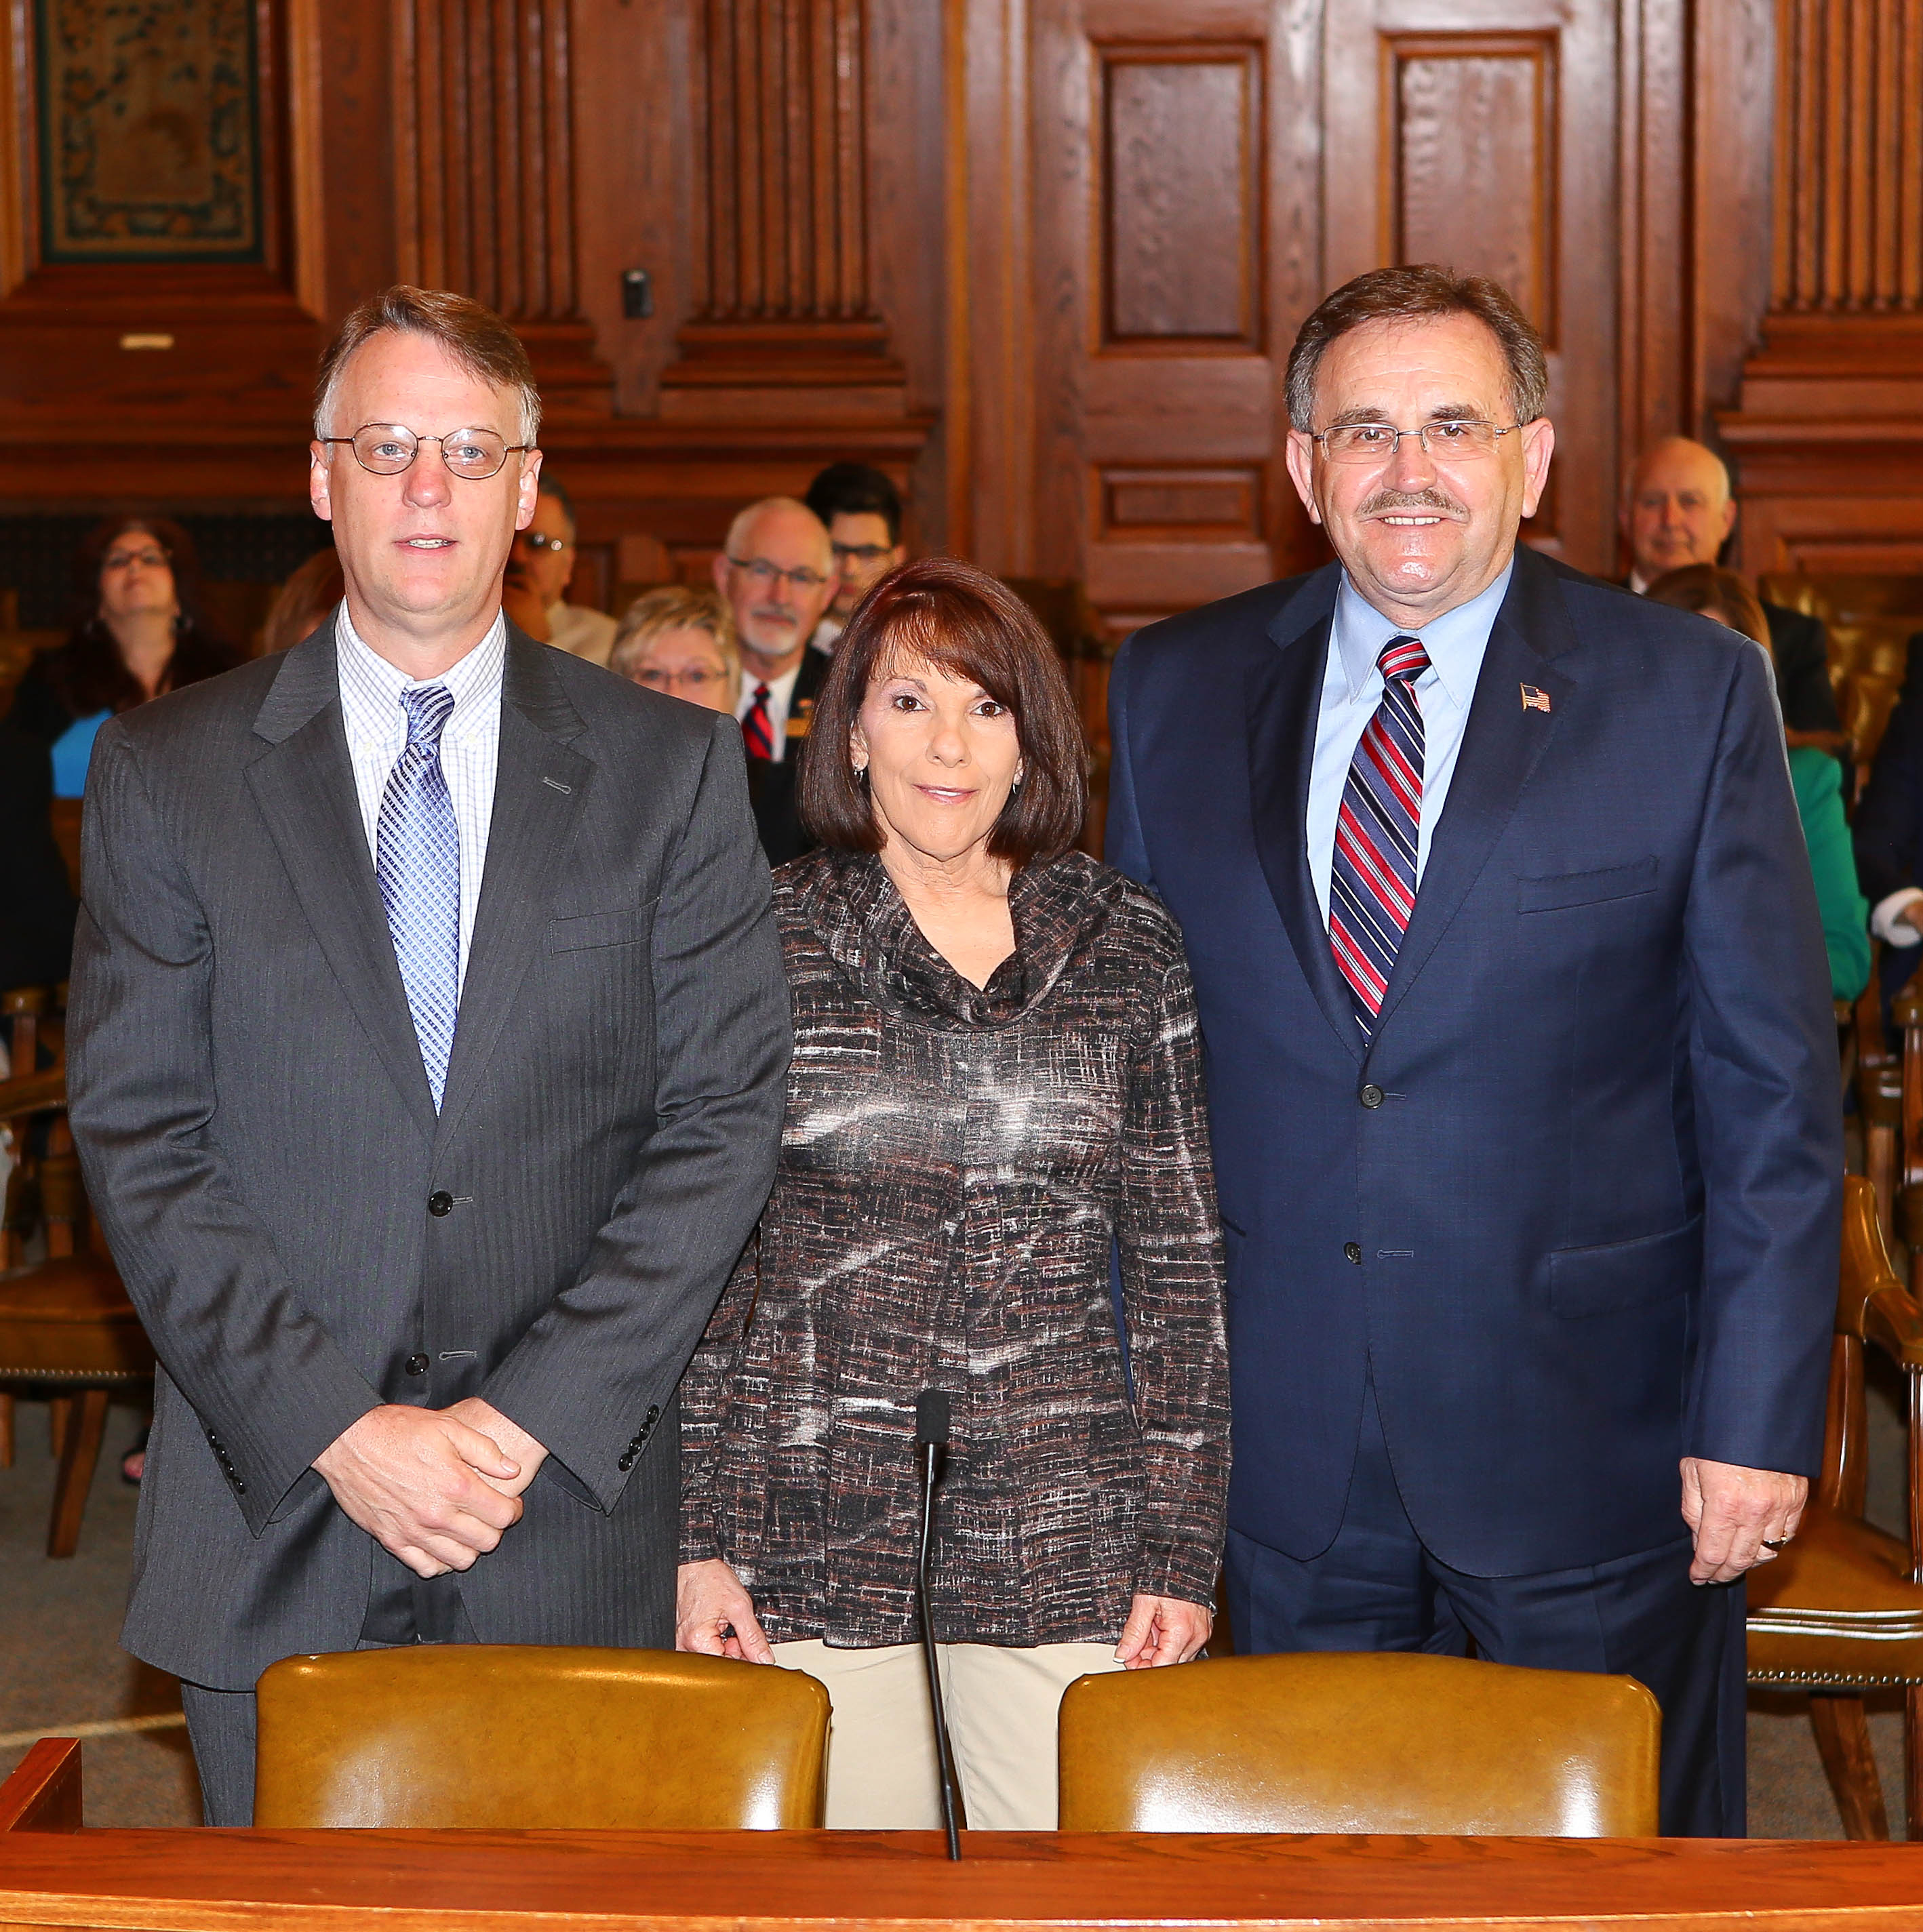 Shown above, Sen. Libla sponsored the appointment of Daryl Sorrell during the Gubernatorial Appointment Committee hearing on March 16, 2016.